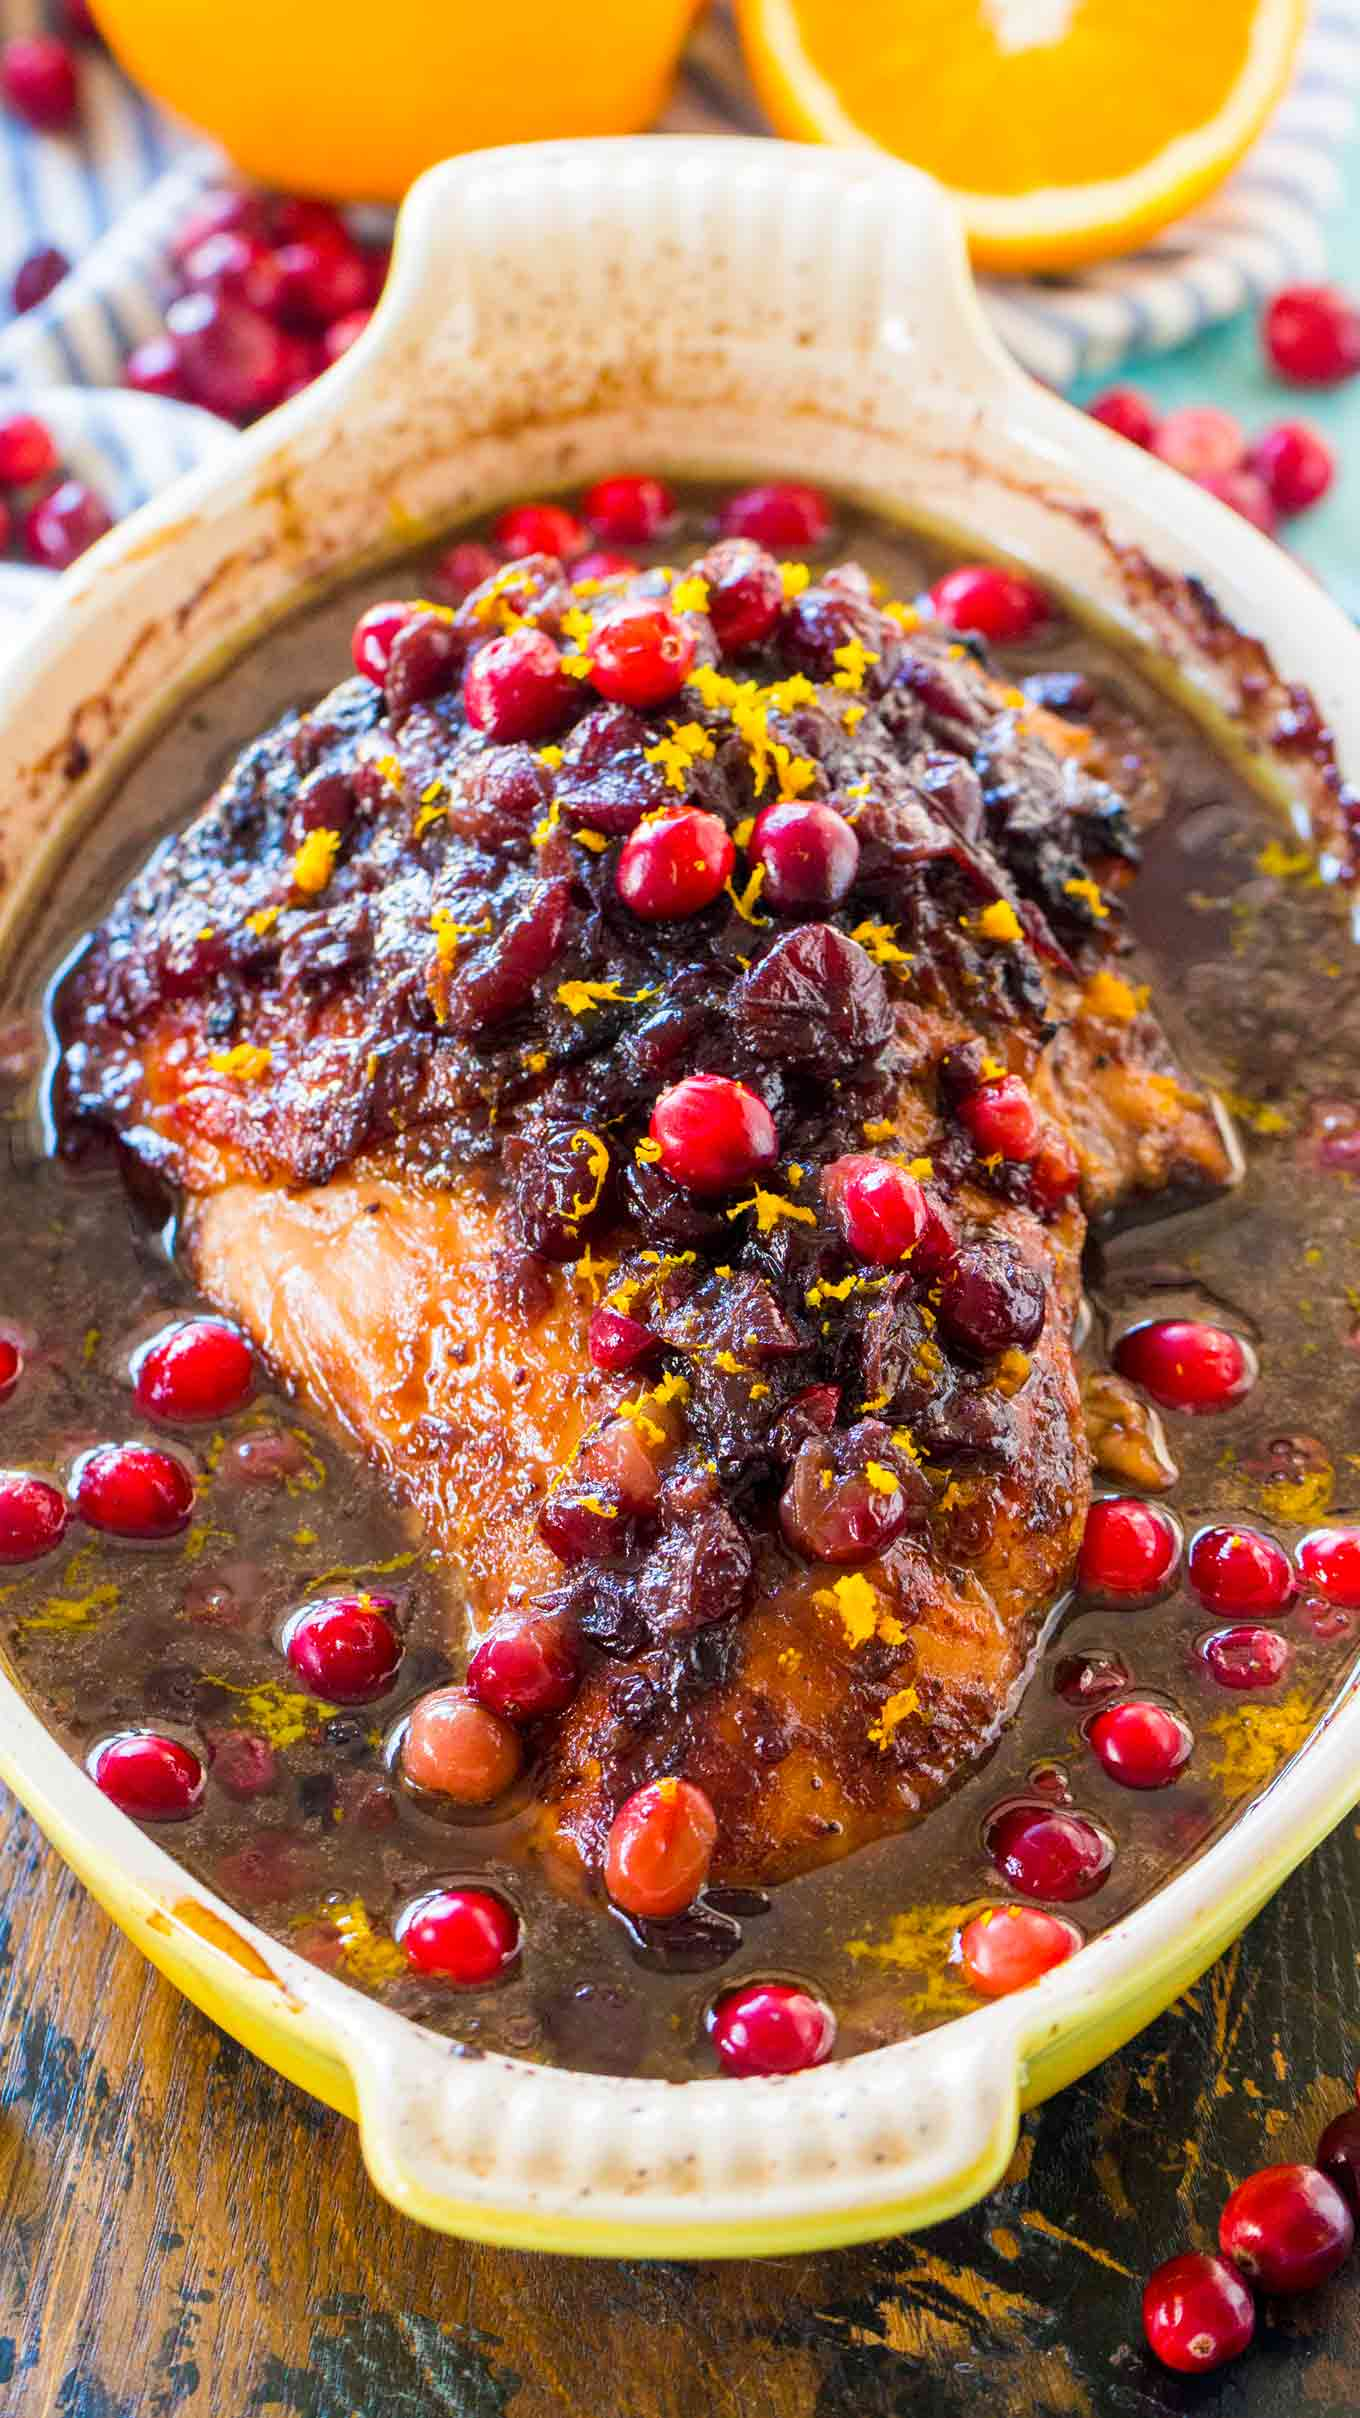 Juicy and flavorful Cranberry Orange Turkey Breast is such a great, easy and delicious alternative to cooking a whole turkey. The meat turns out juicy and flavorful.